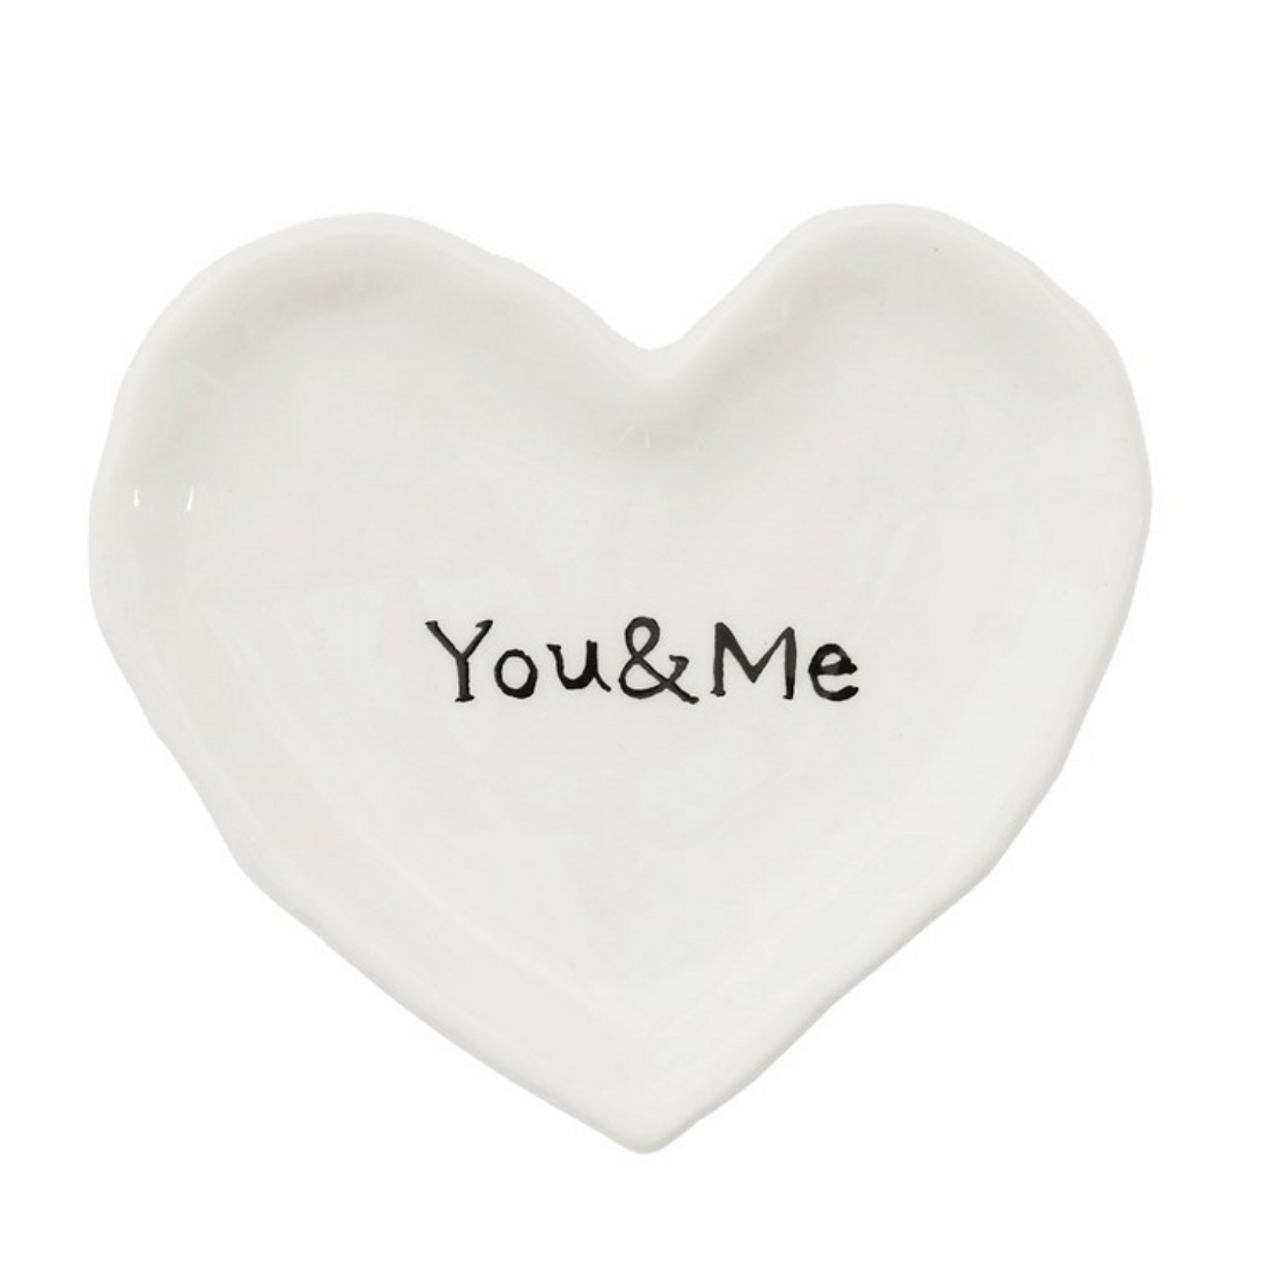 You & Me Heart-Shaped Ring Dish